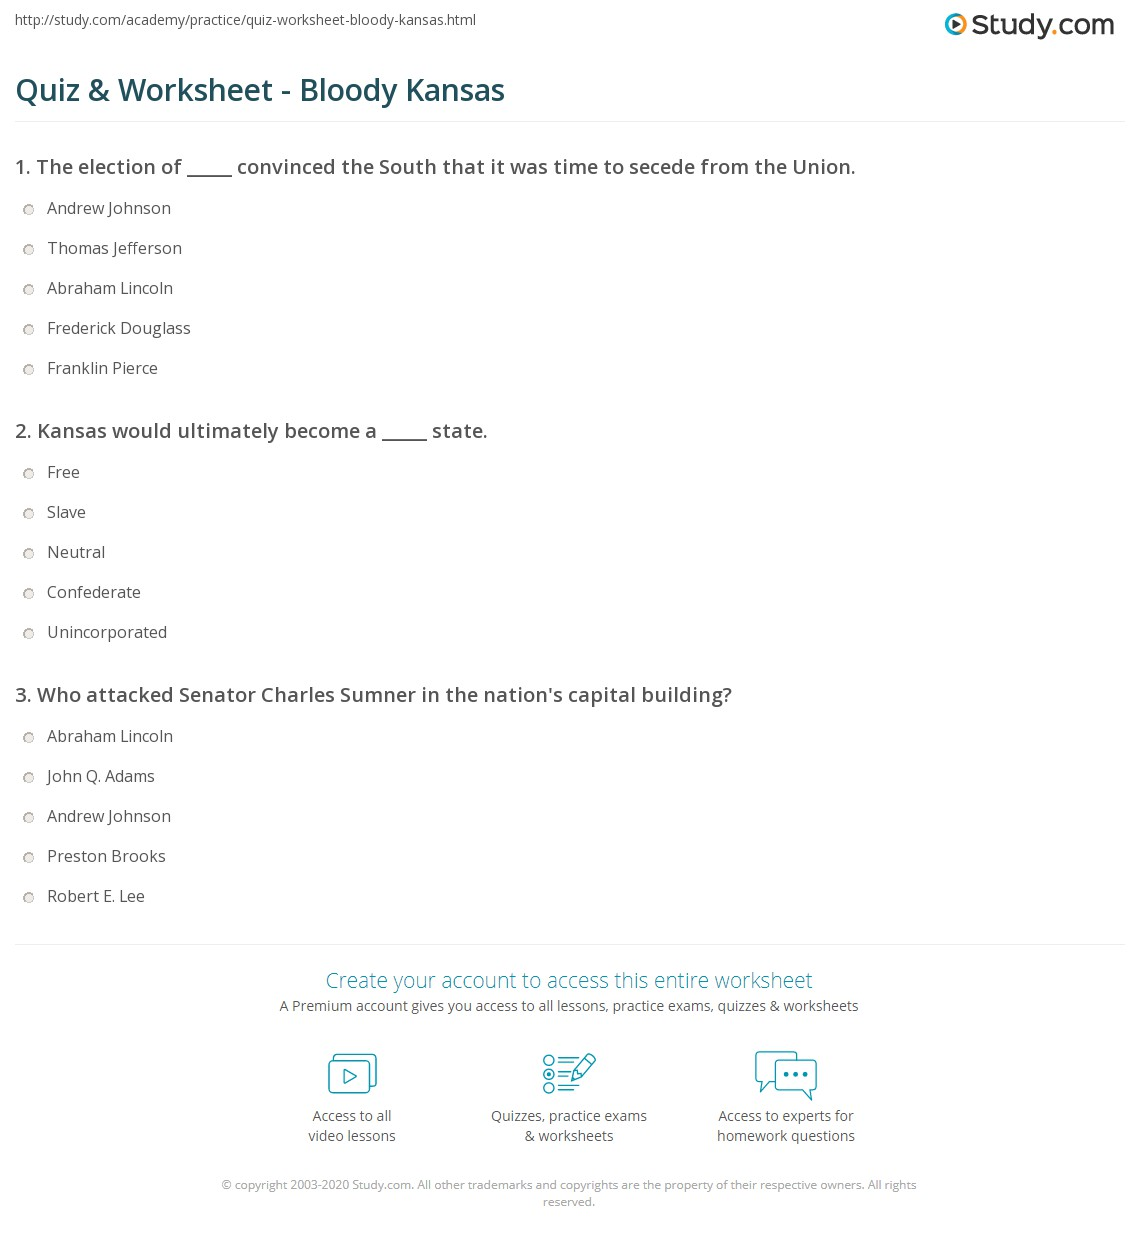 quiz worksheet bloody kansas. Black Bedroom Furniture Sets. Home Design Ideas